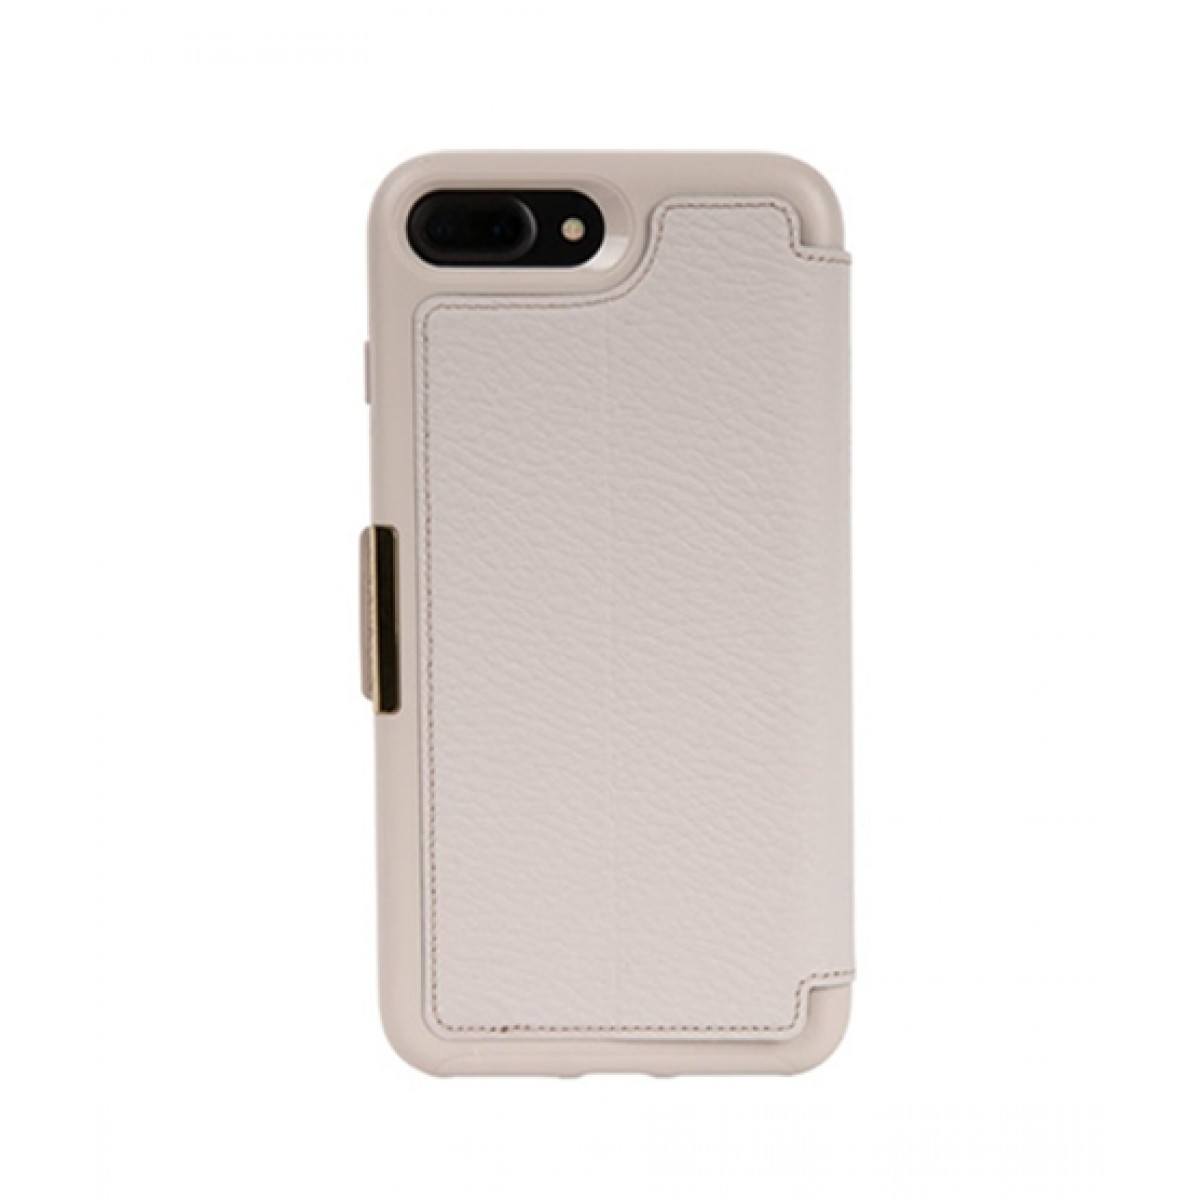 new arrival 02306 1ea79 OtterBox Strada Series Leather Folio Soft Opal Case For iPhone 8 Plus